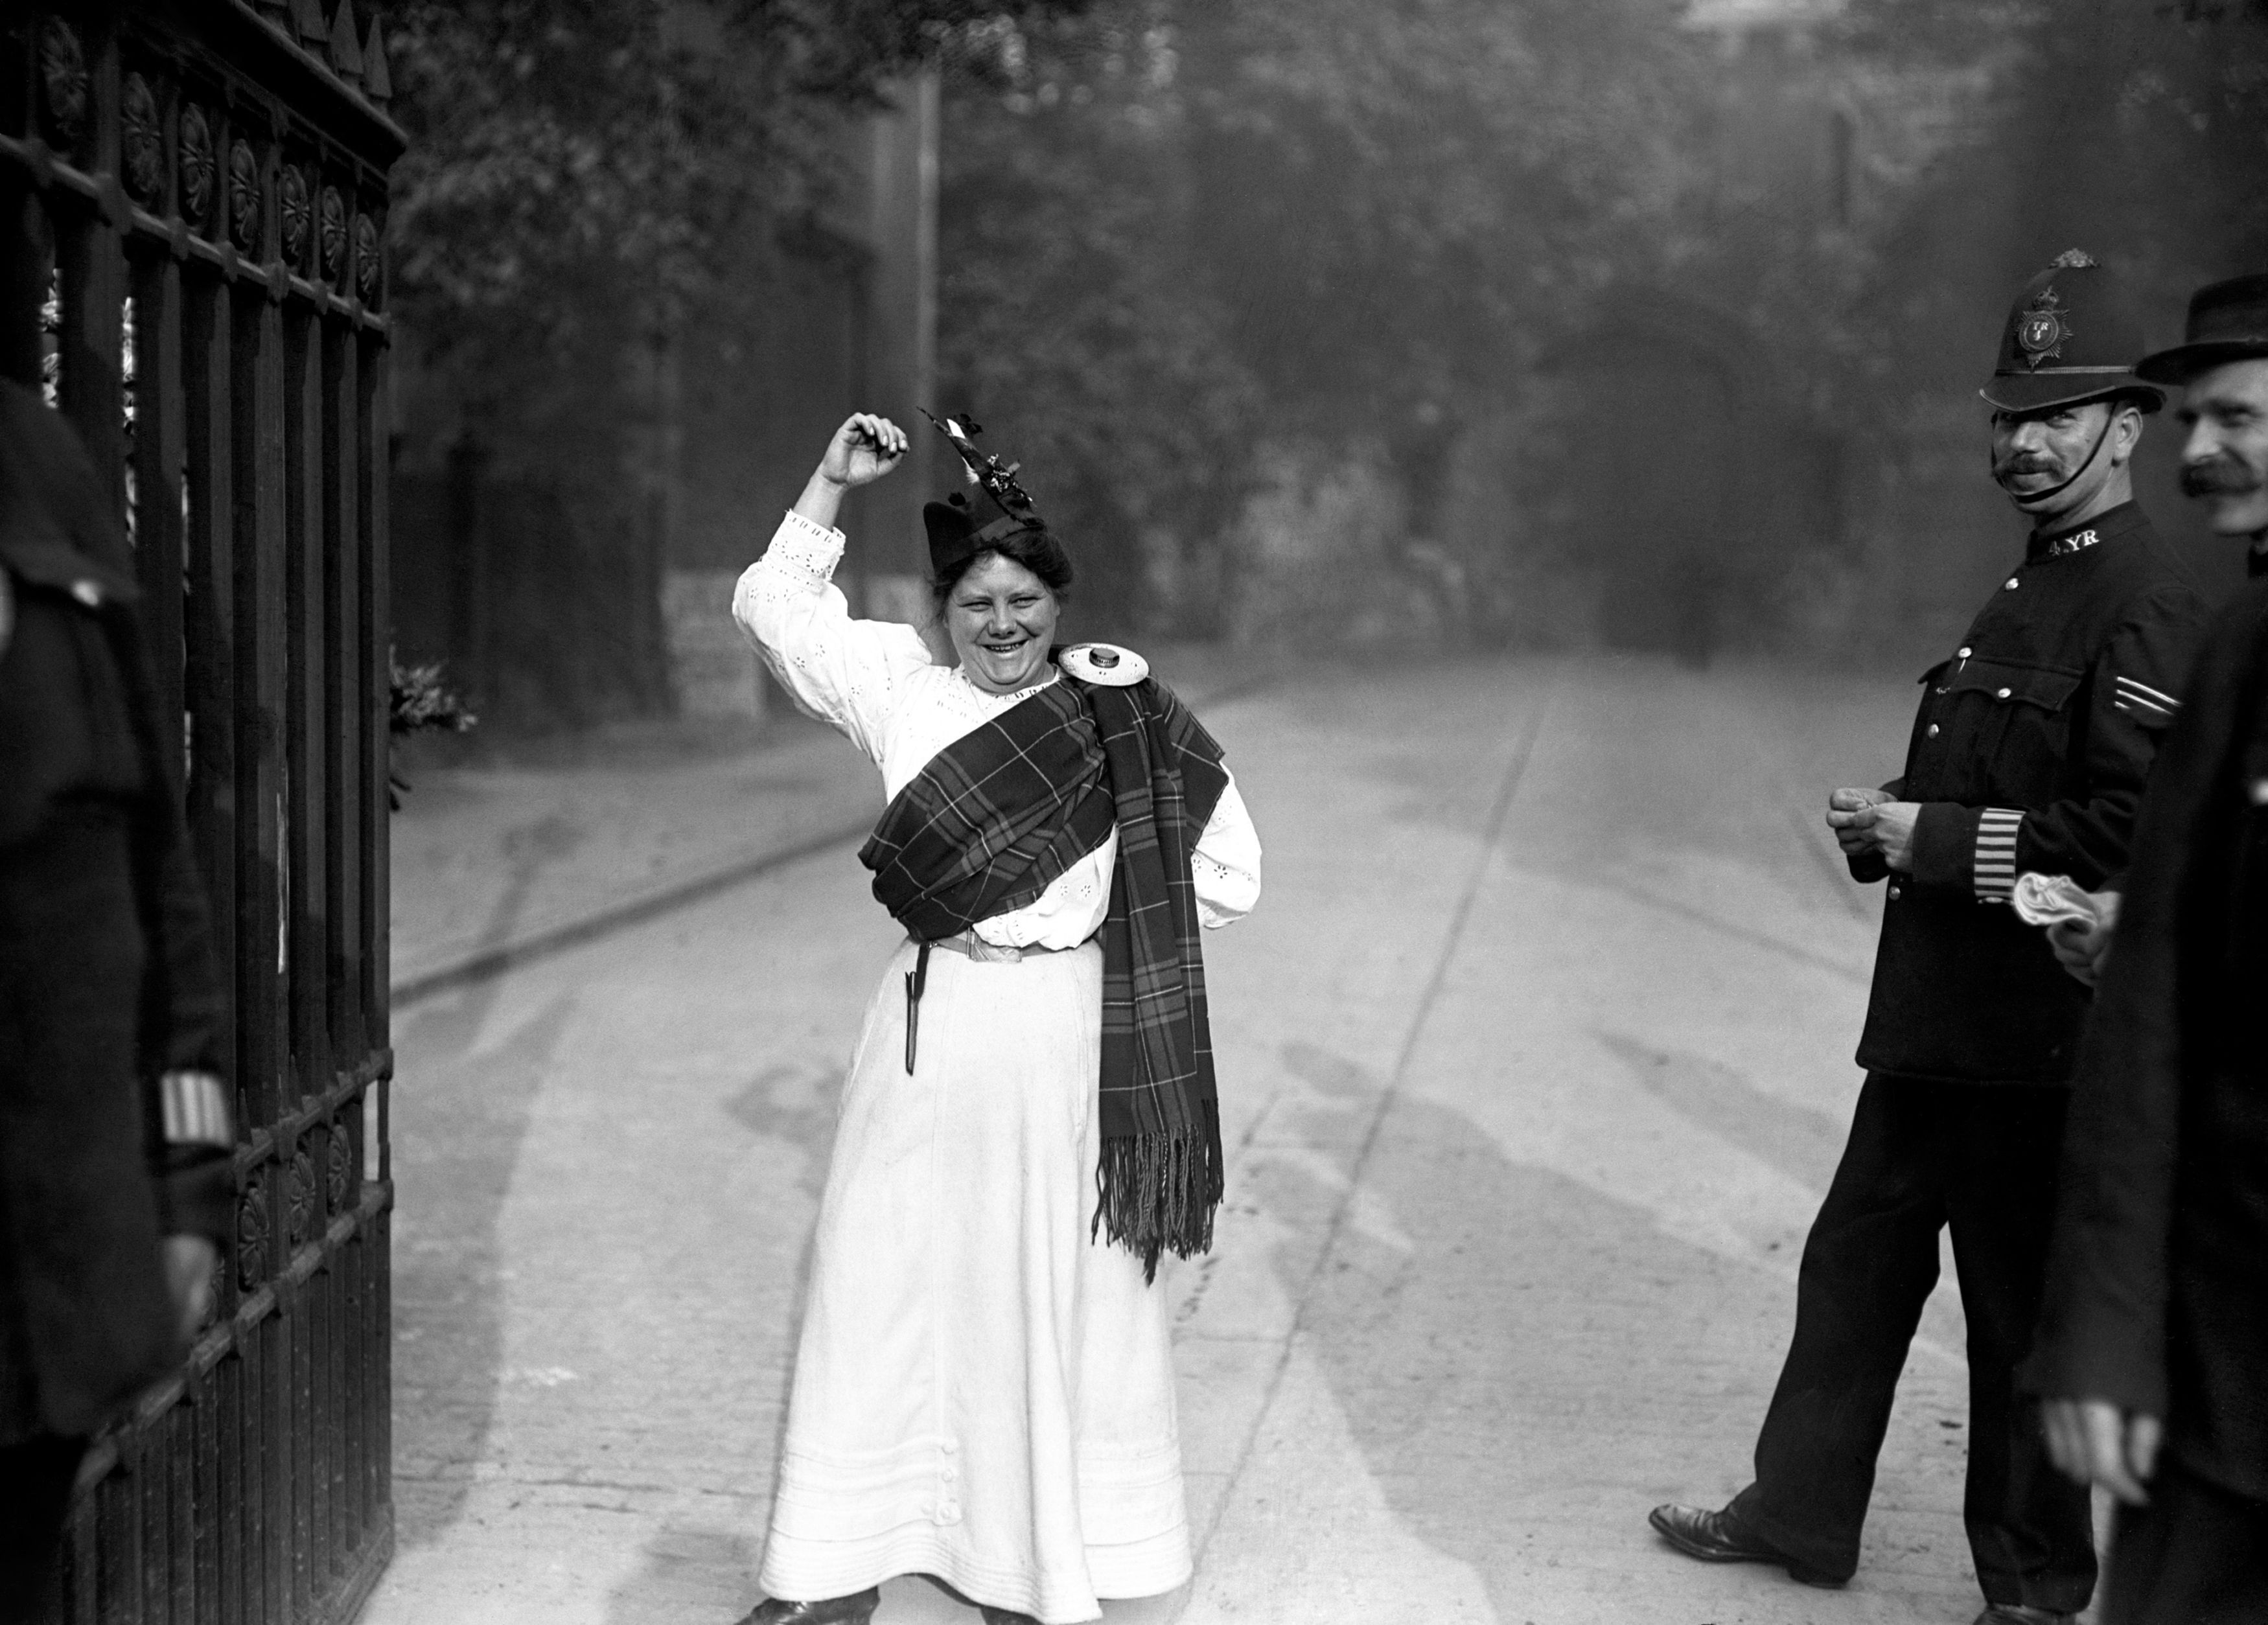 Manchester-born Flora Drummond, who was known for dramatic stunts, a militant attitude to suffrage, and rallying speeches (PA)